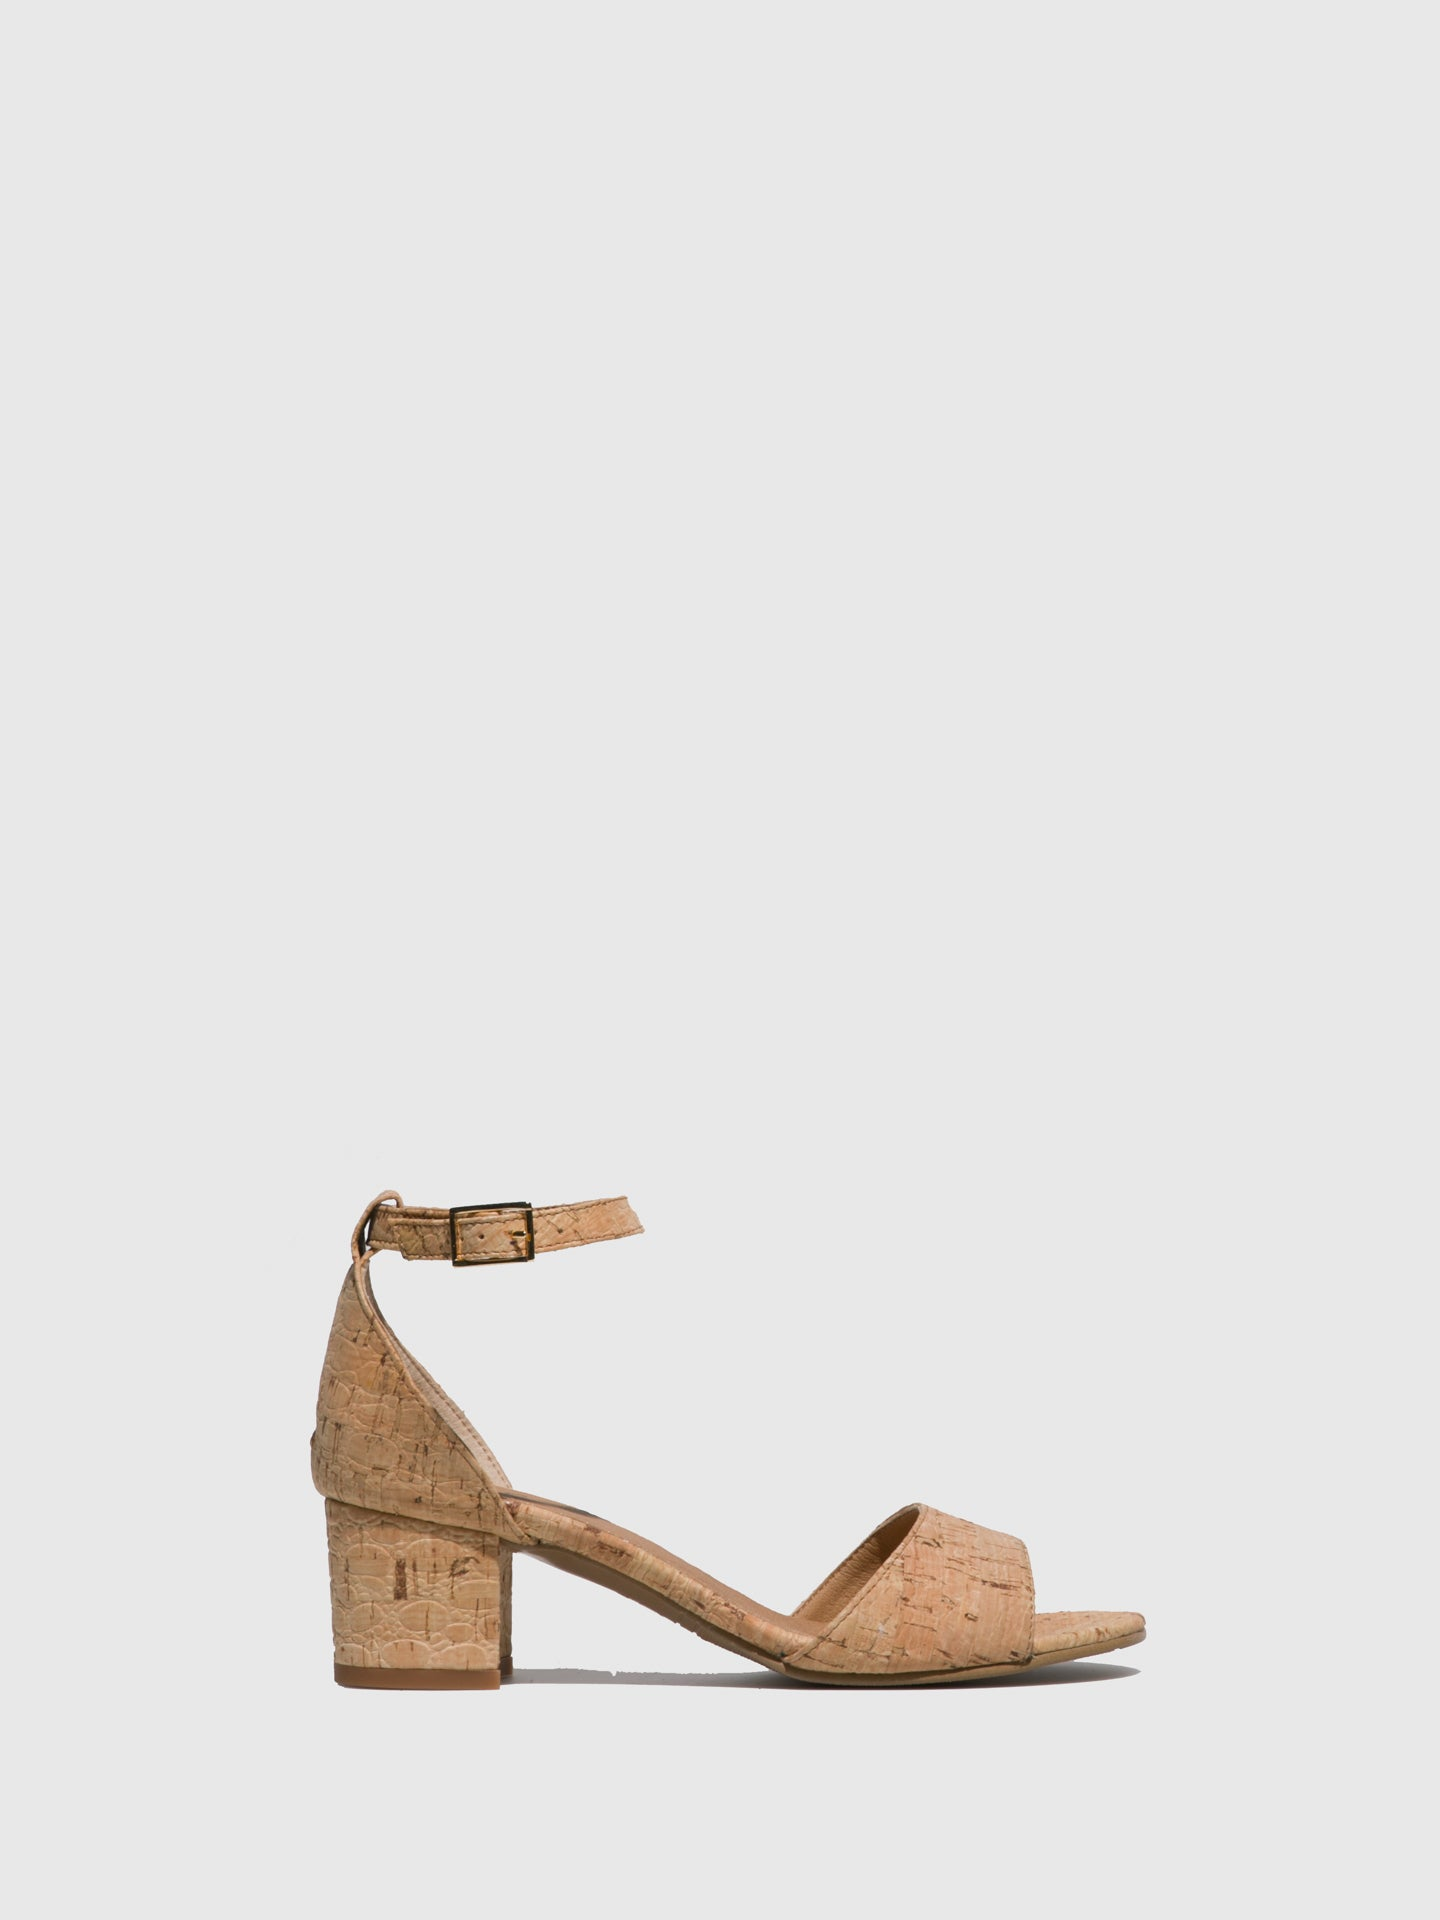 NAE Vegan Shoes Brown Ankle Strap Sandals